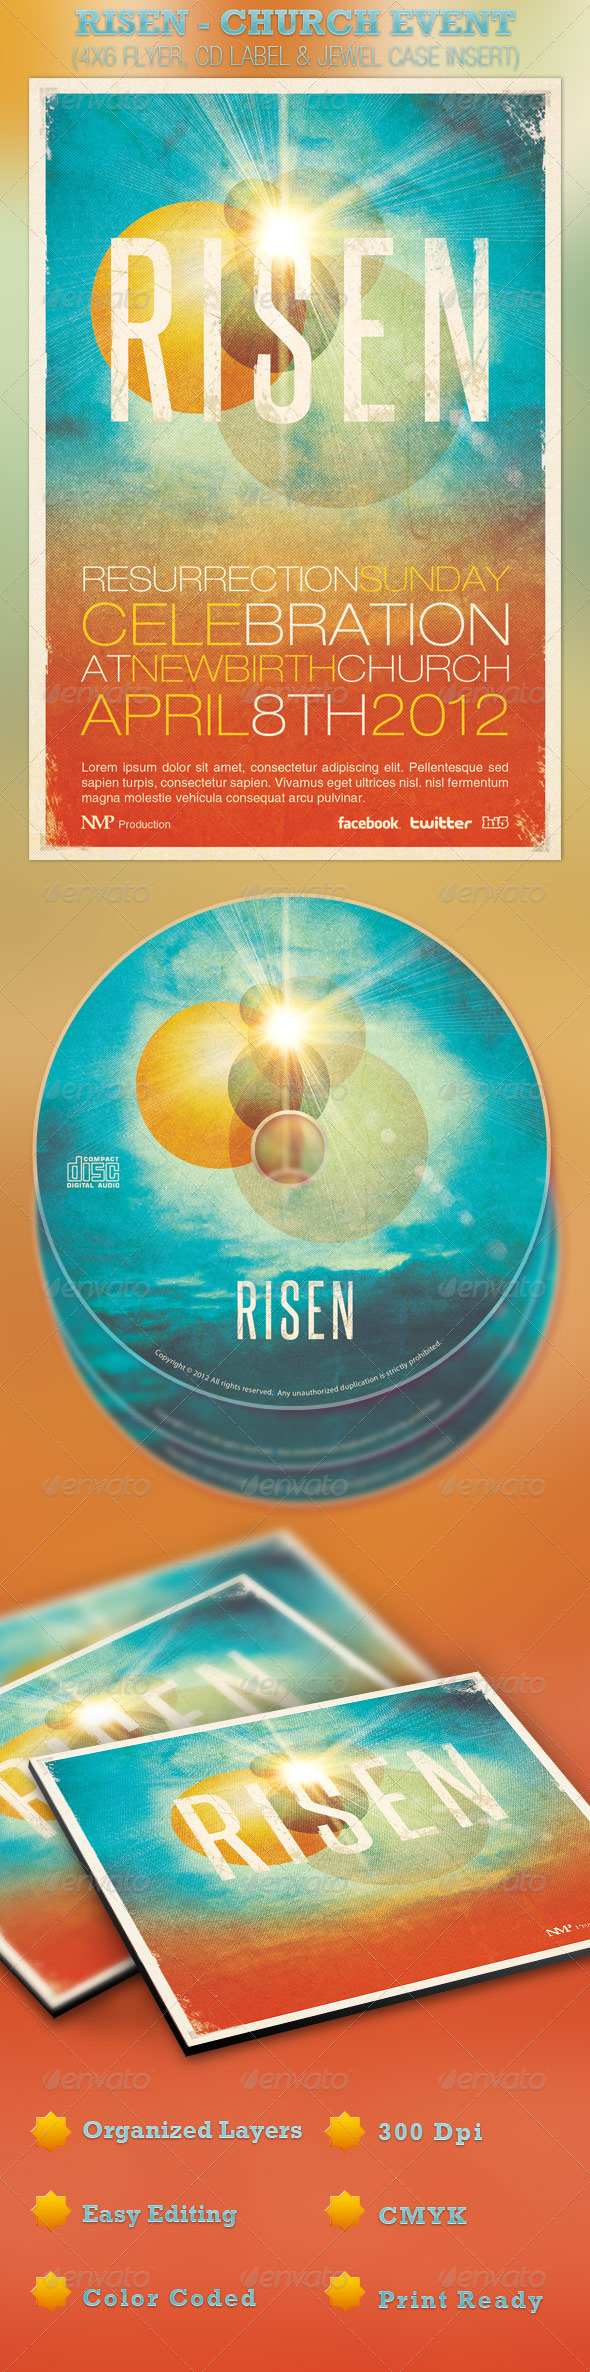 Risen Church Event Flyer and CD Template - Church Flyers